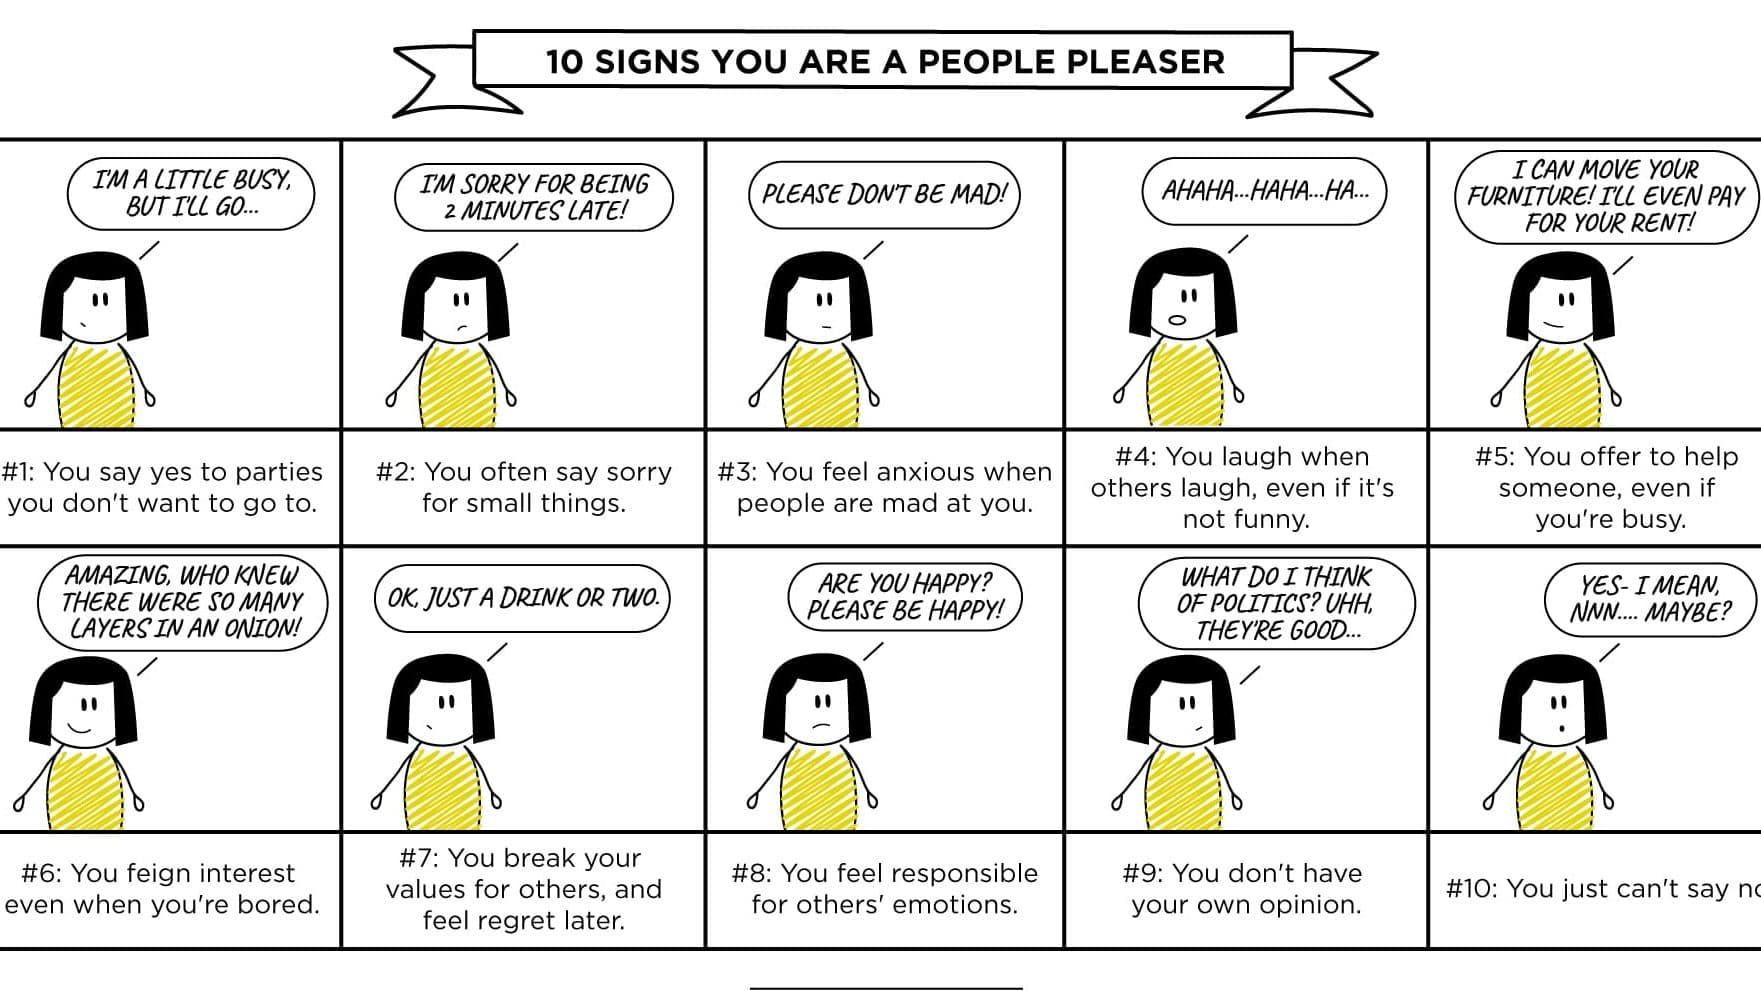 10 signs you are a people pleaser infographic